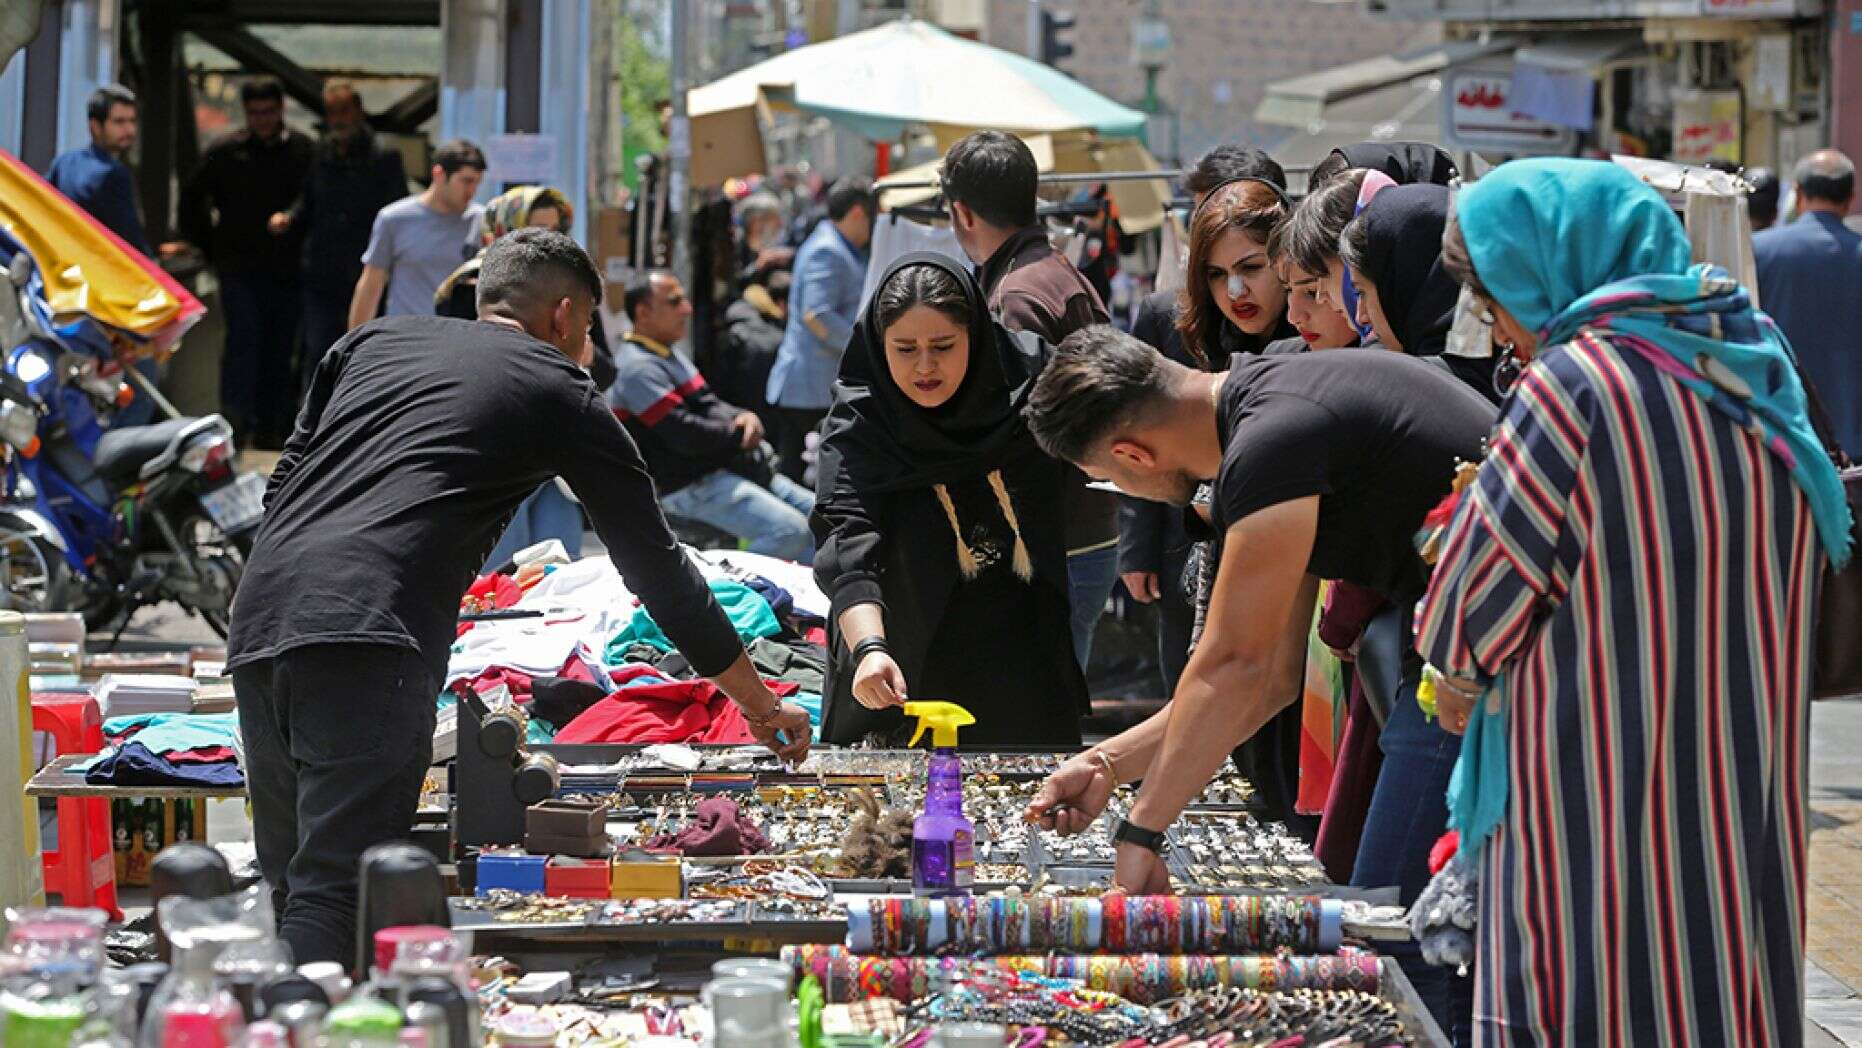 Facts about Iran's economic situation